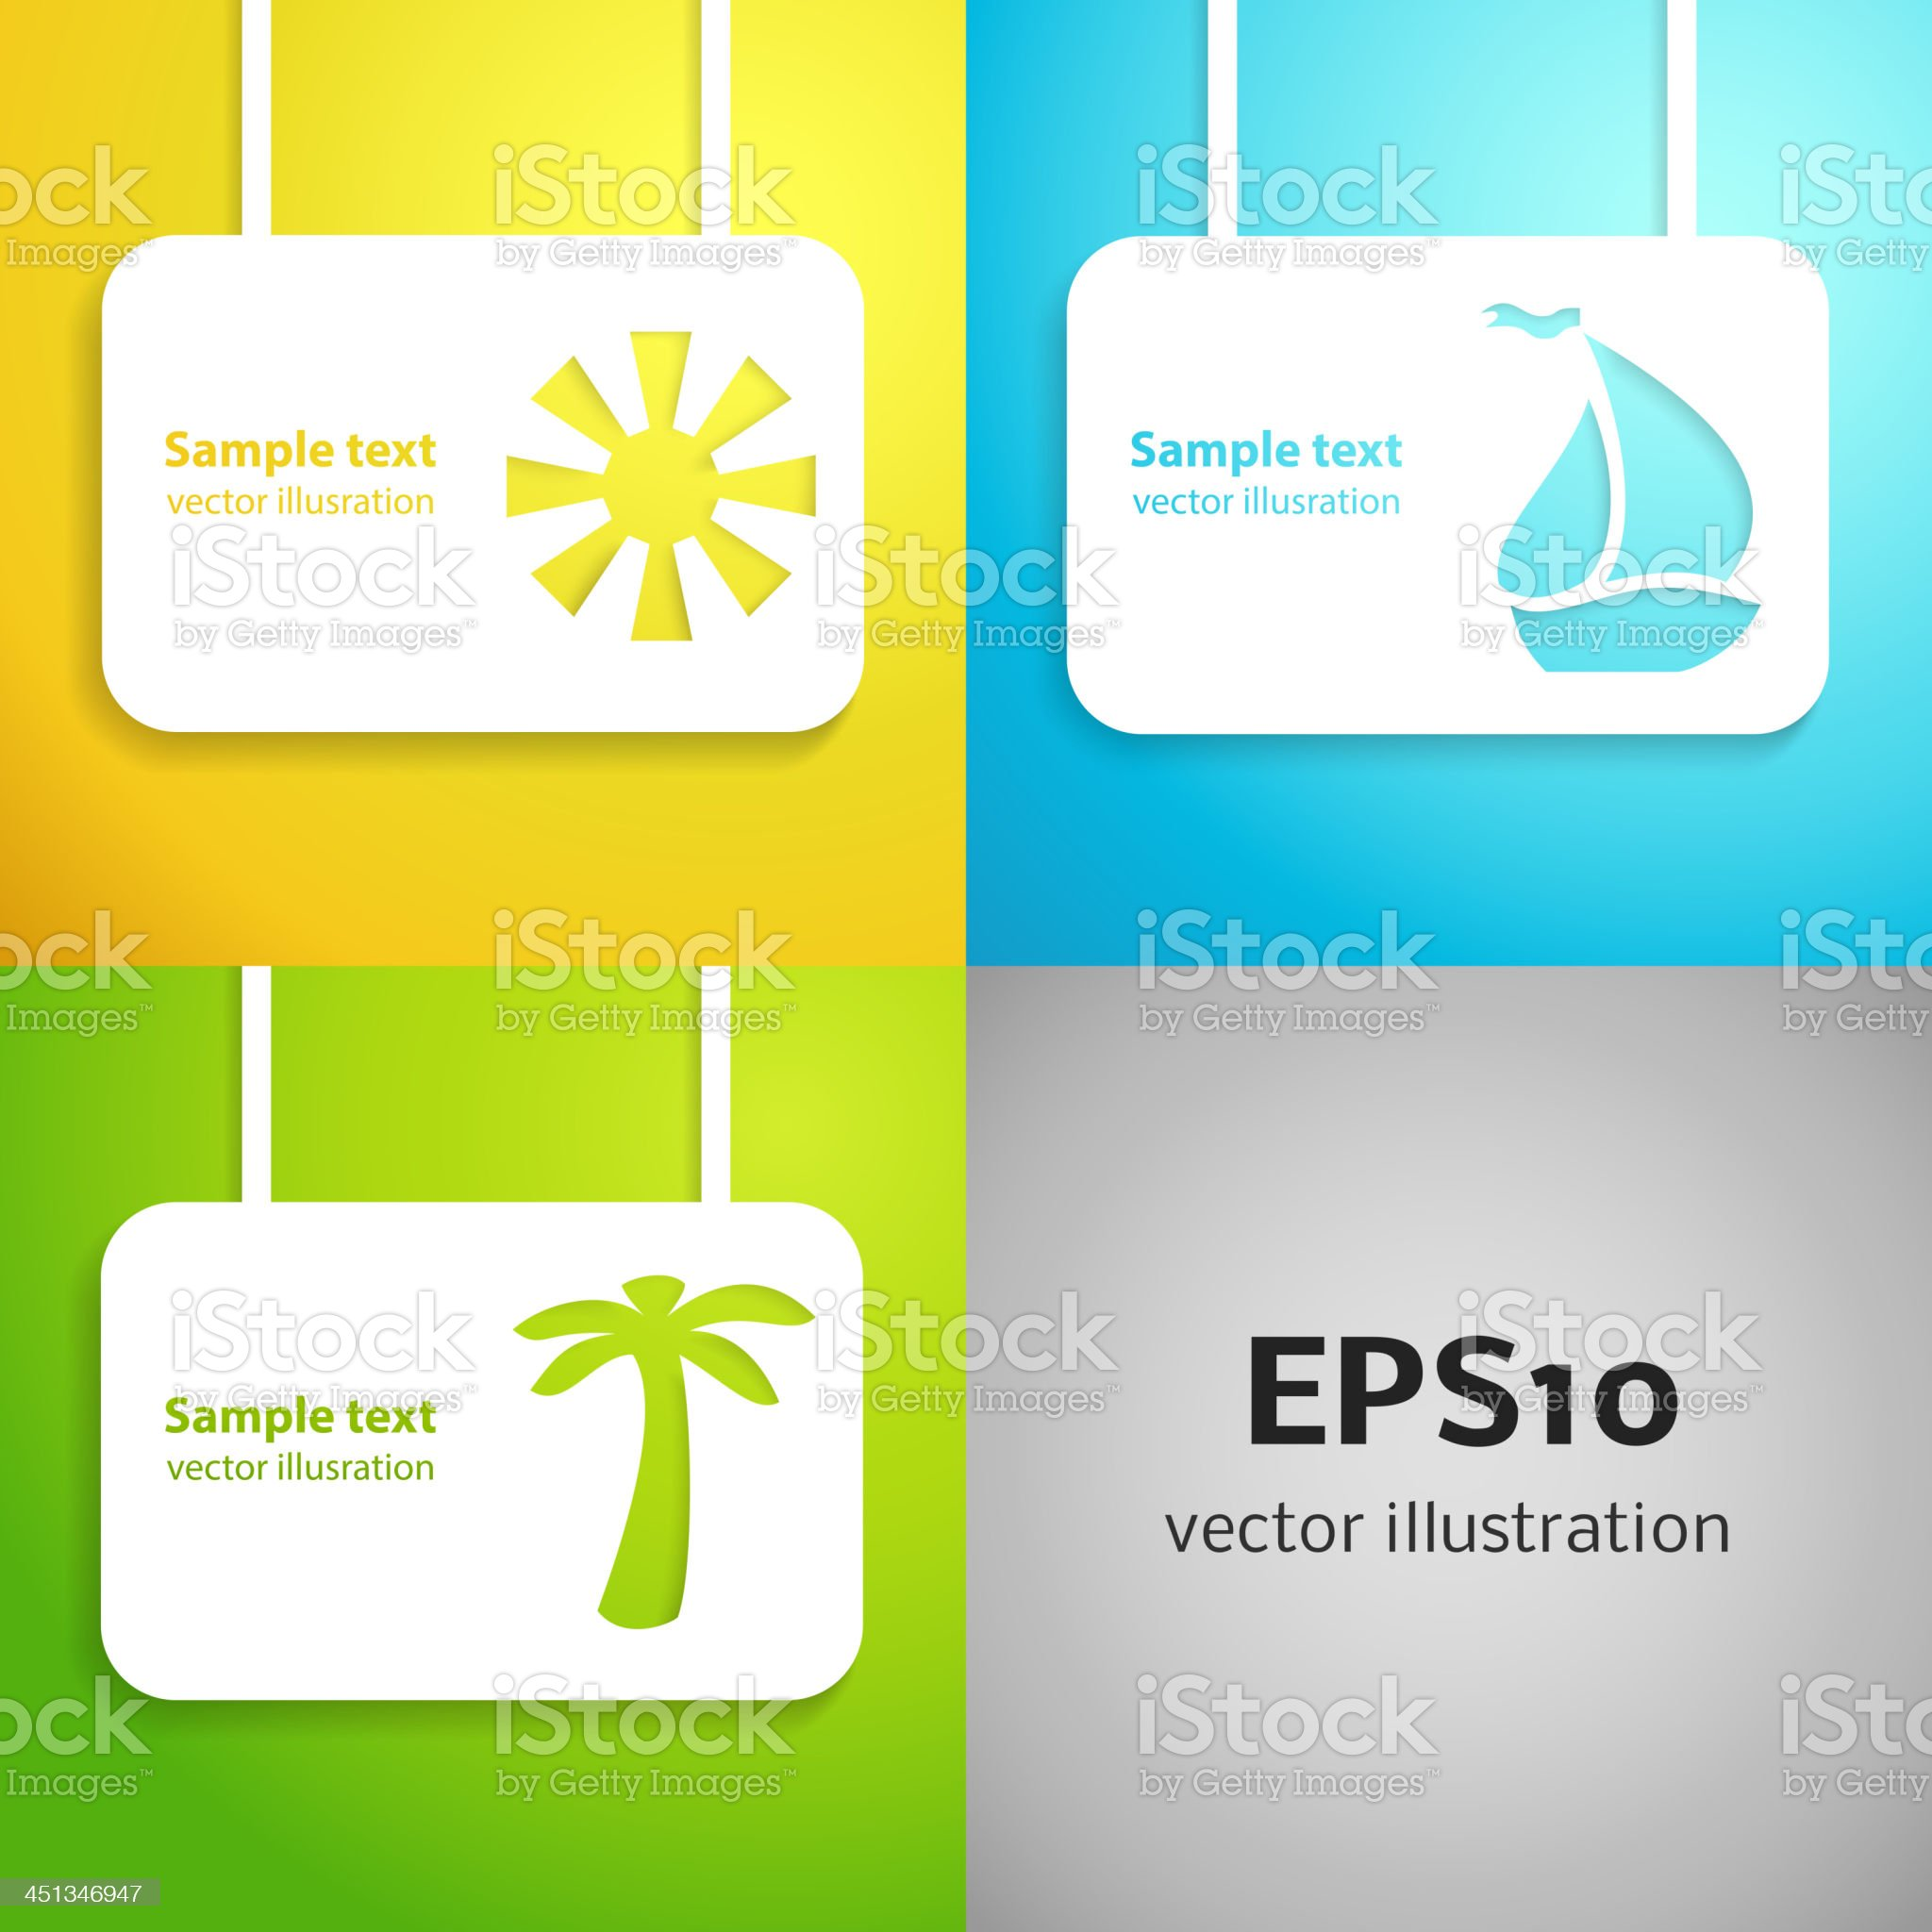 Sun, sail boat and palm tree applique background set. royalty-free stock vector art